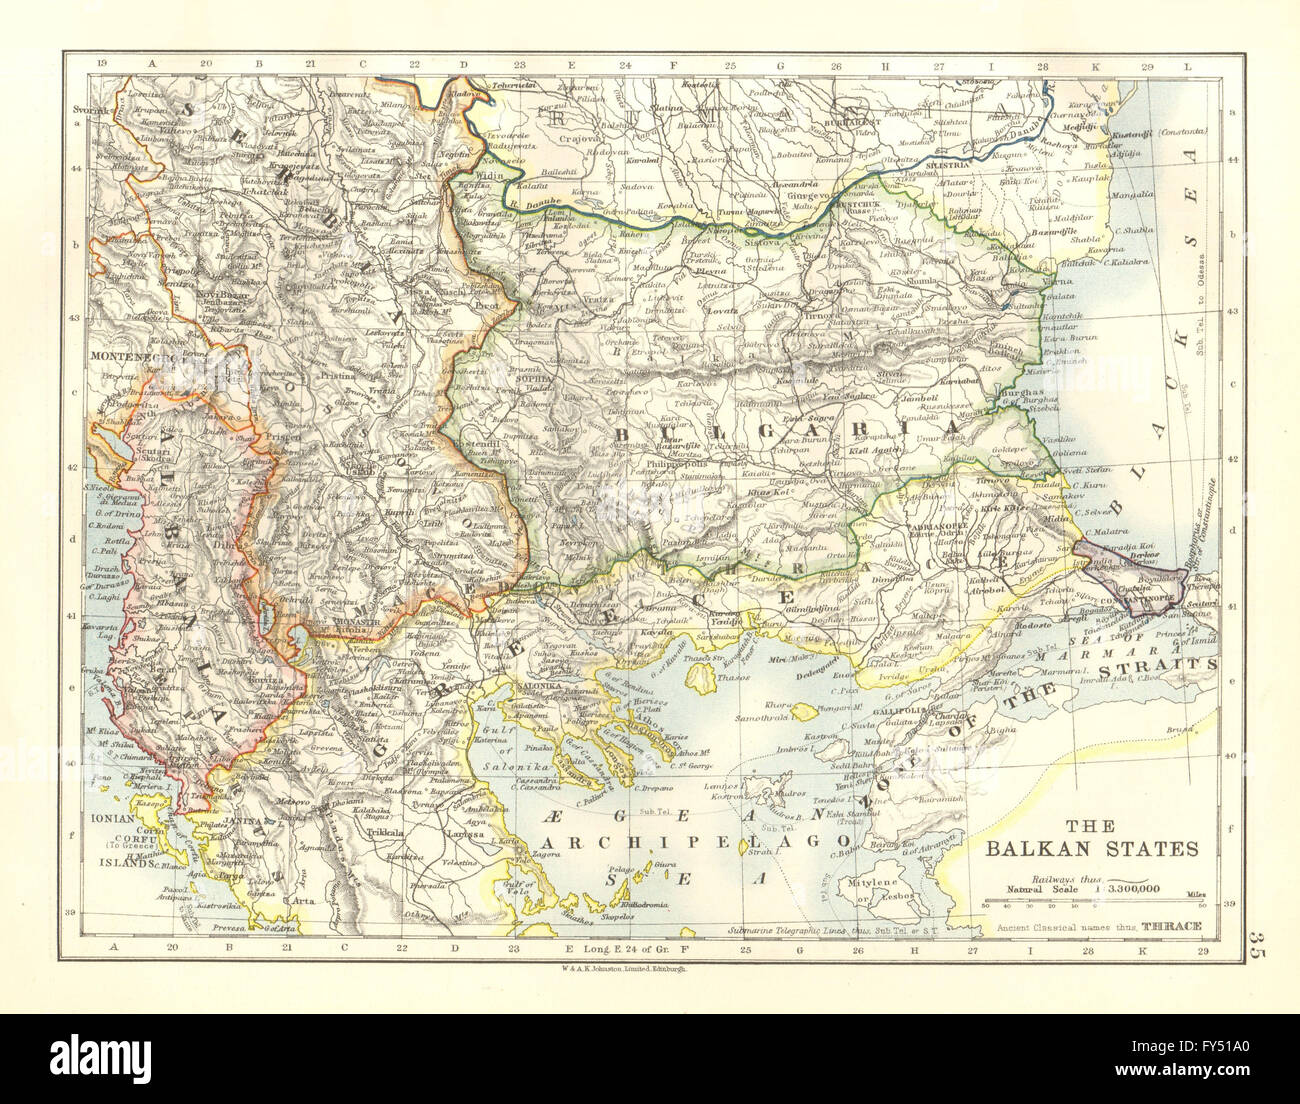 BALKAN STATES Per Treaty Of Sevres Zone Of Straits DMZ Greek - Greece in the treaty of sevres